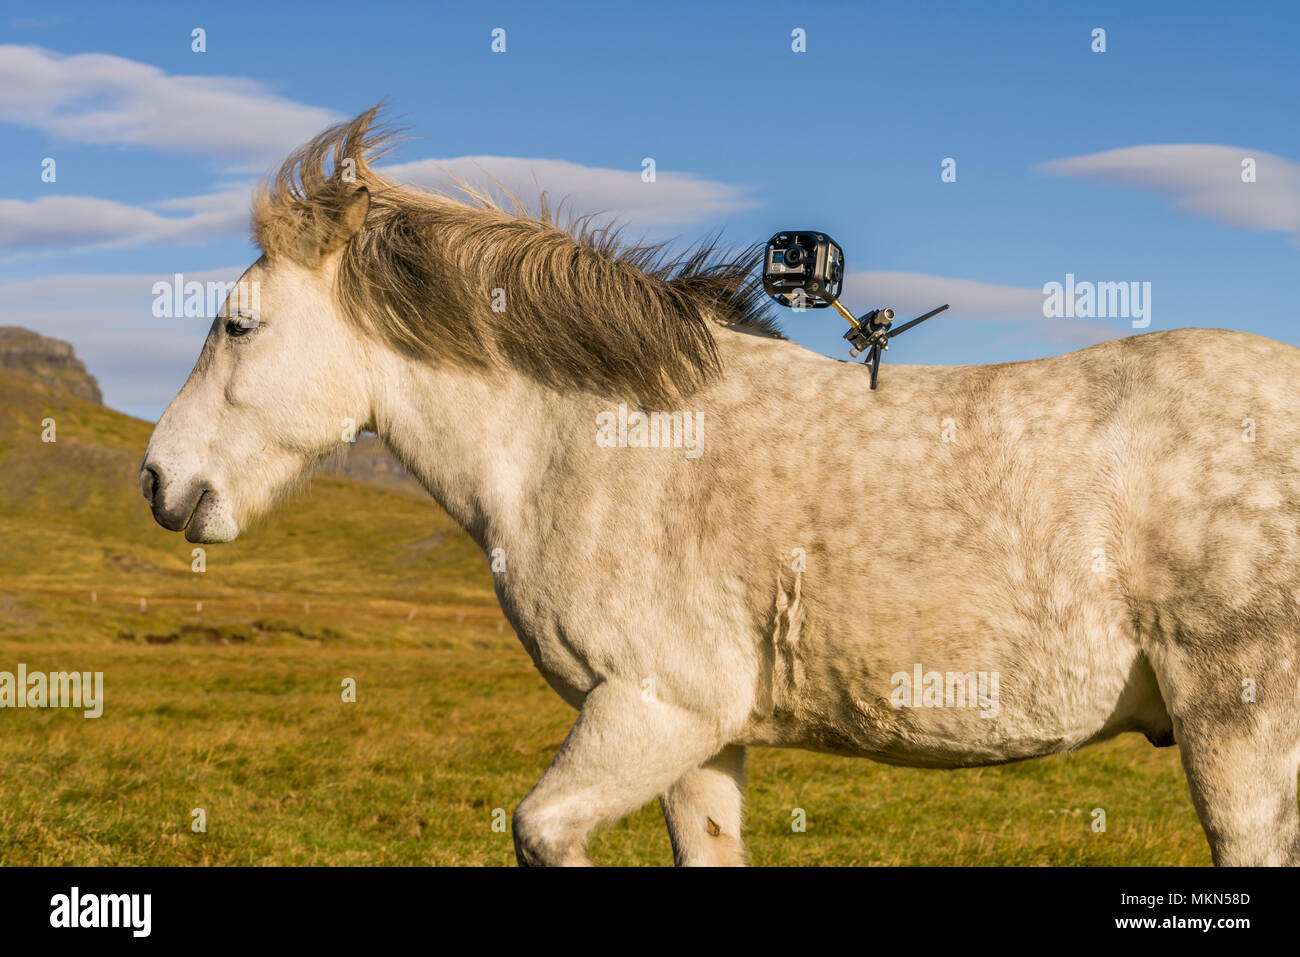 Icelandic Horse with Camera on his back, Iceland - Stock Image